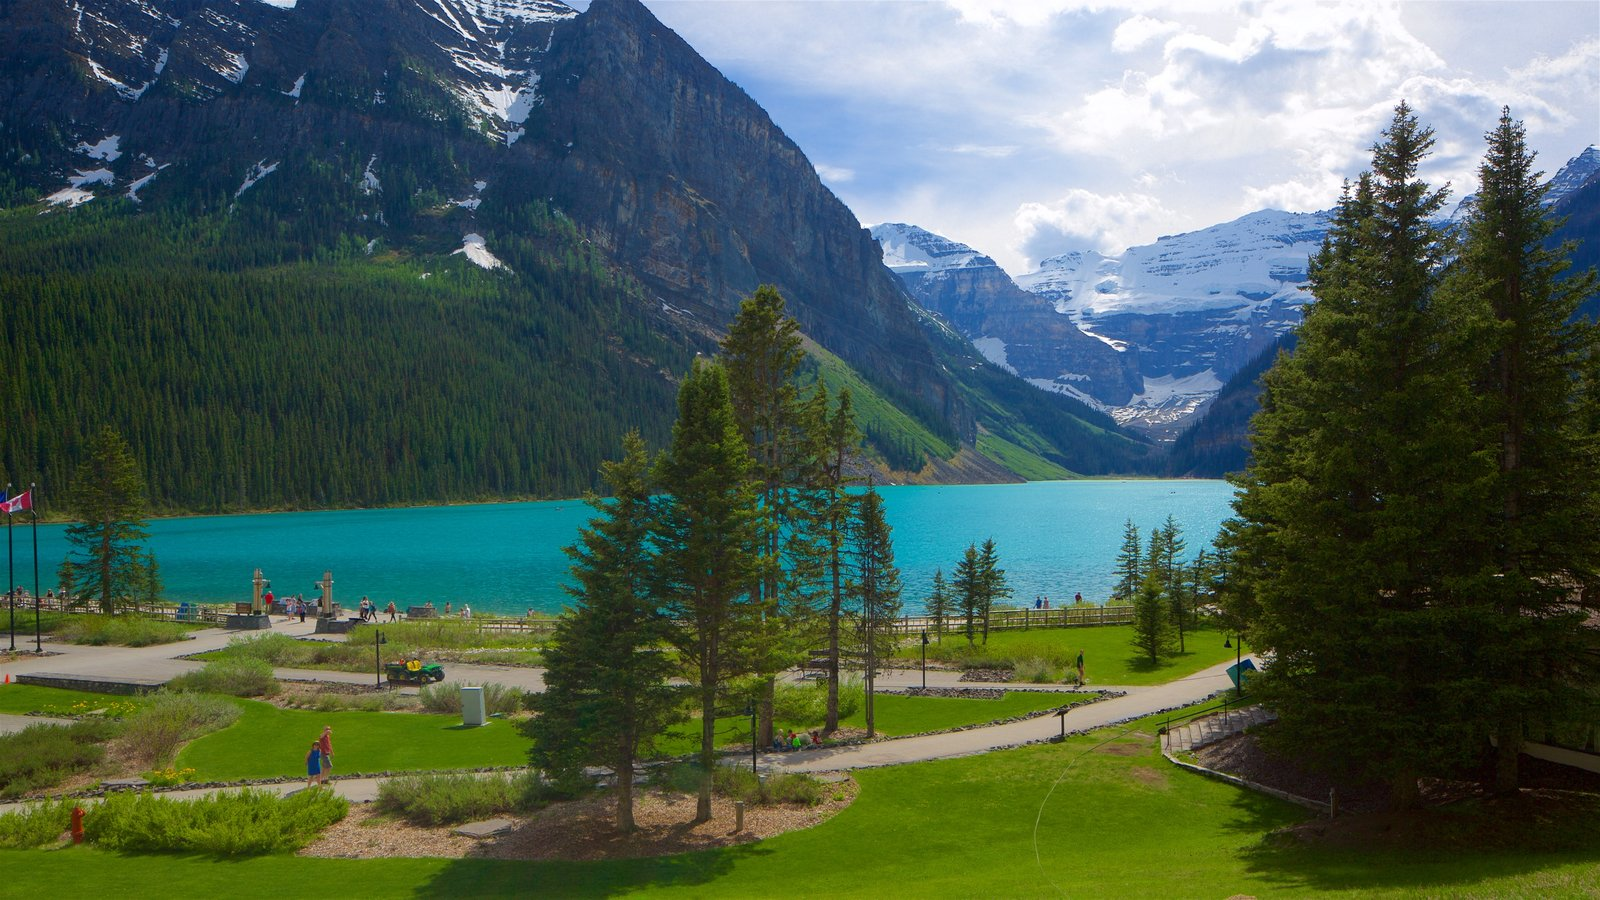 Banff National Park featuring a lake or waterhole, a garden and tranquil scenes